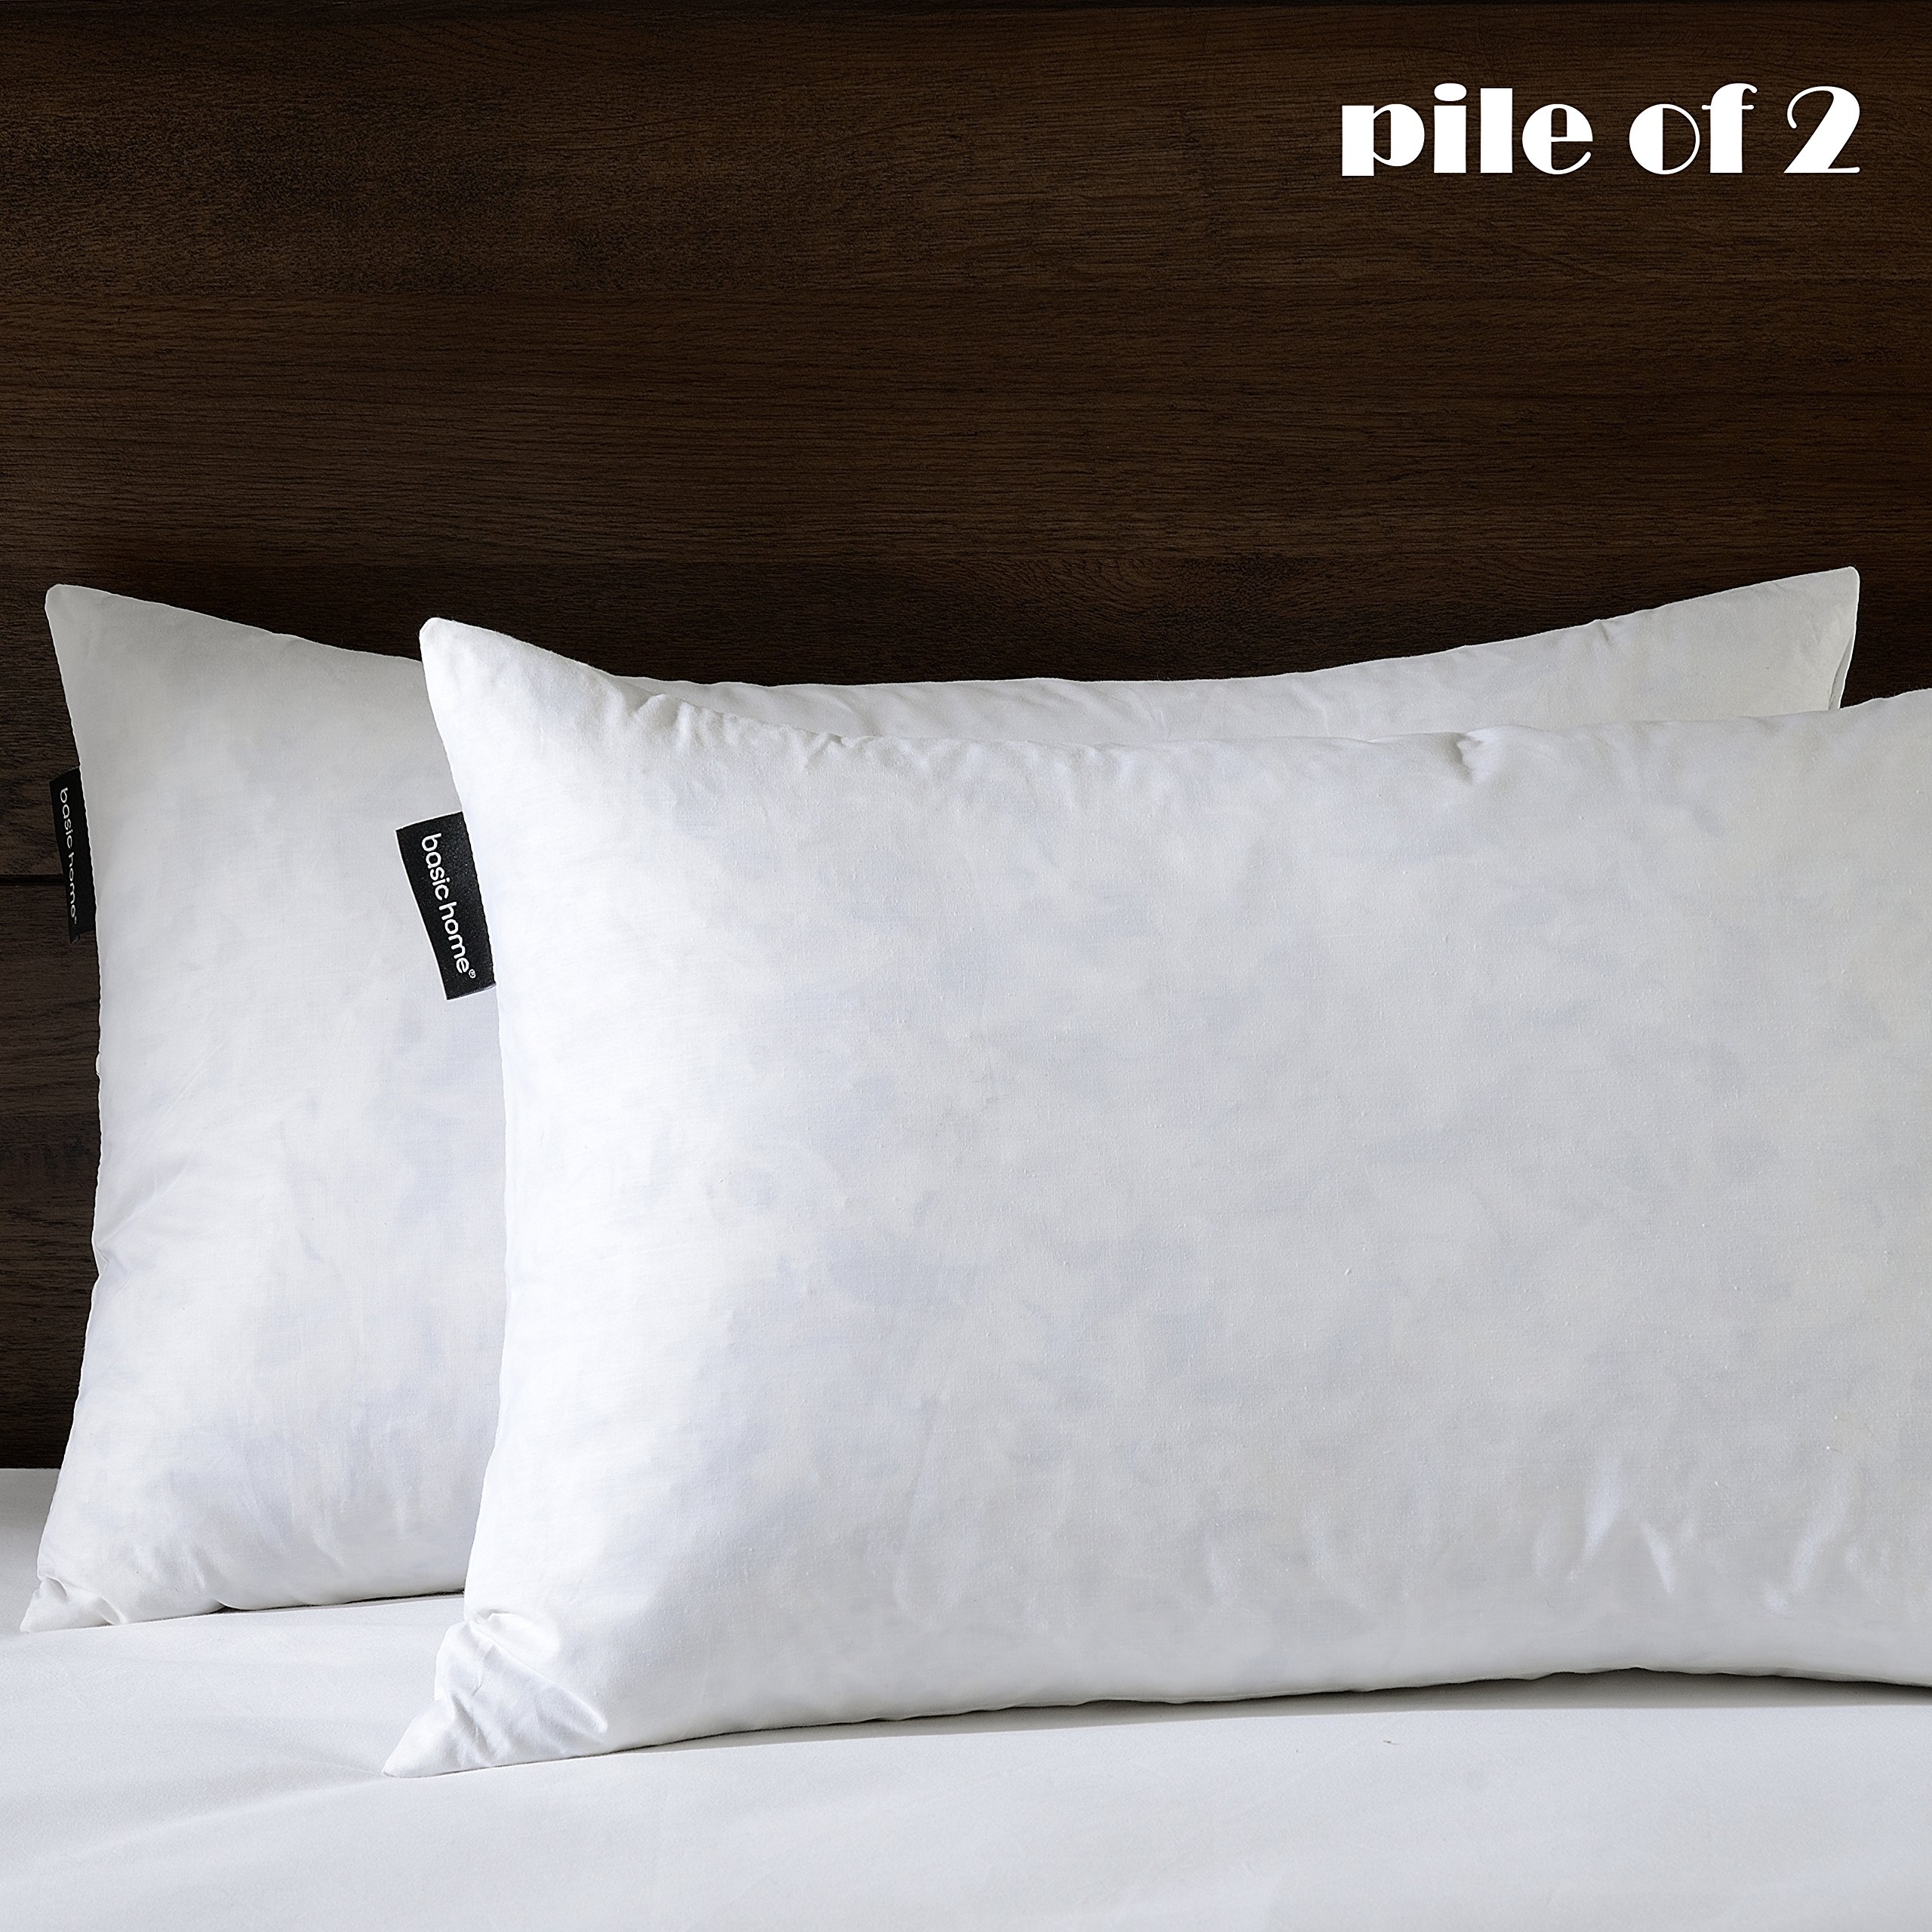 12''X20'' Oblong Pillow Insert, 95% Feather 5% Down, 100% Cotton Fabric, Set of 2, White, BASIC HOME